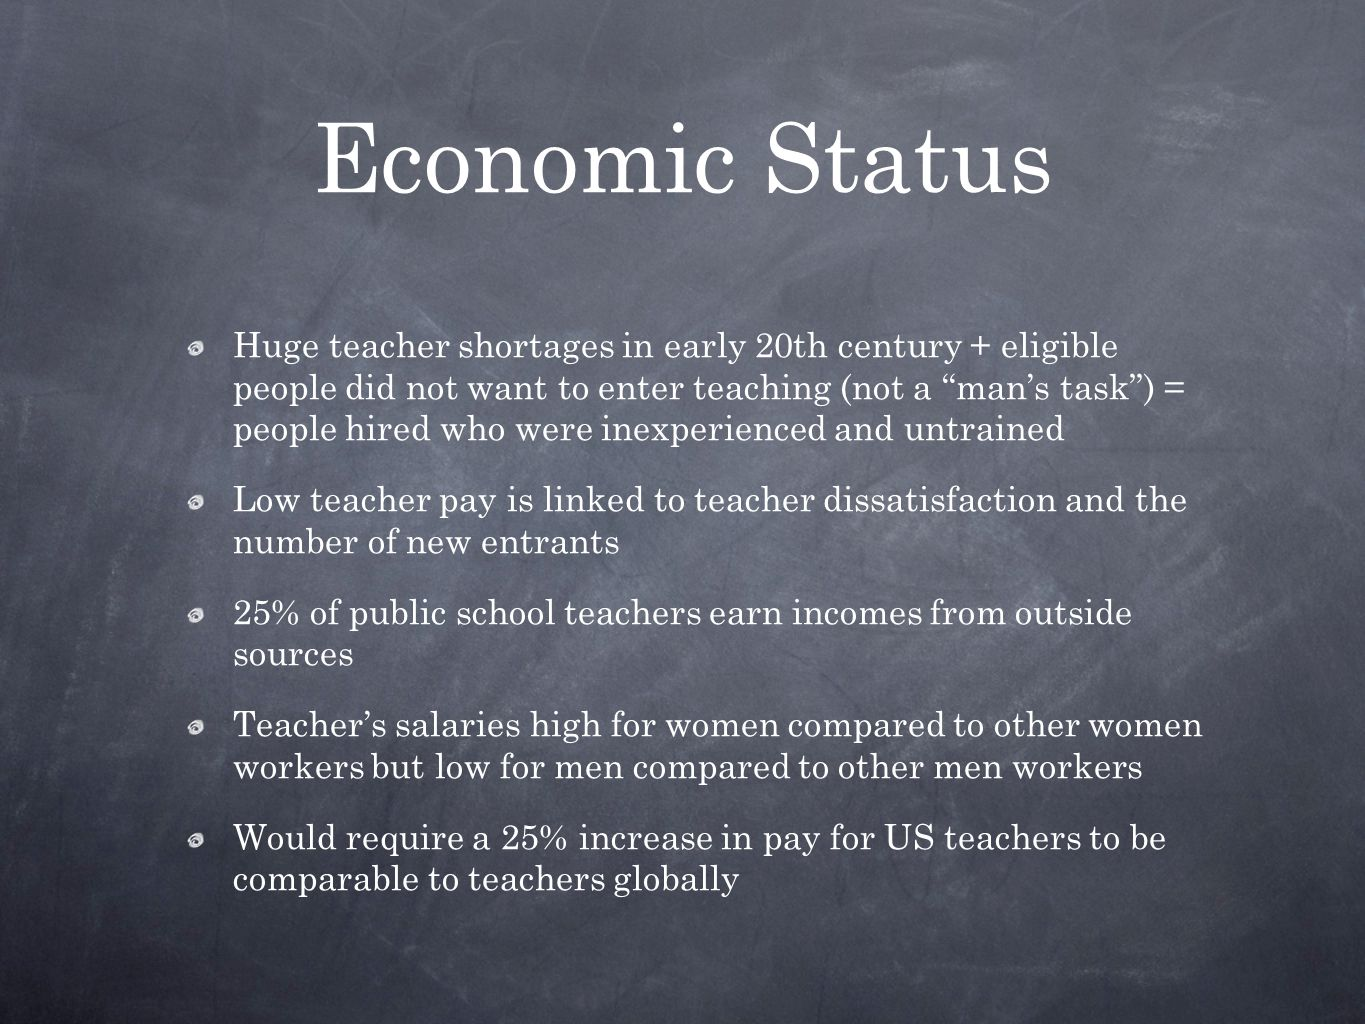 Economic Status Huge teacher shortages in early 20th century + eligible people did not want to enter teaching (not a man's task ) = people hired who were inexperienced and untrained Low teacher pay is linked to teacher dissatisfaction and the number of new entrants 25% of public school teachers earn incomes from outside sources Teacher's salaries high for women compared to other women workers but low for men compared to other men workers Would require a 25% increase in pay for US teachers to be comparable to teachers globally